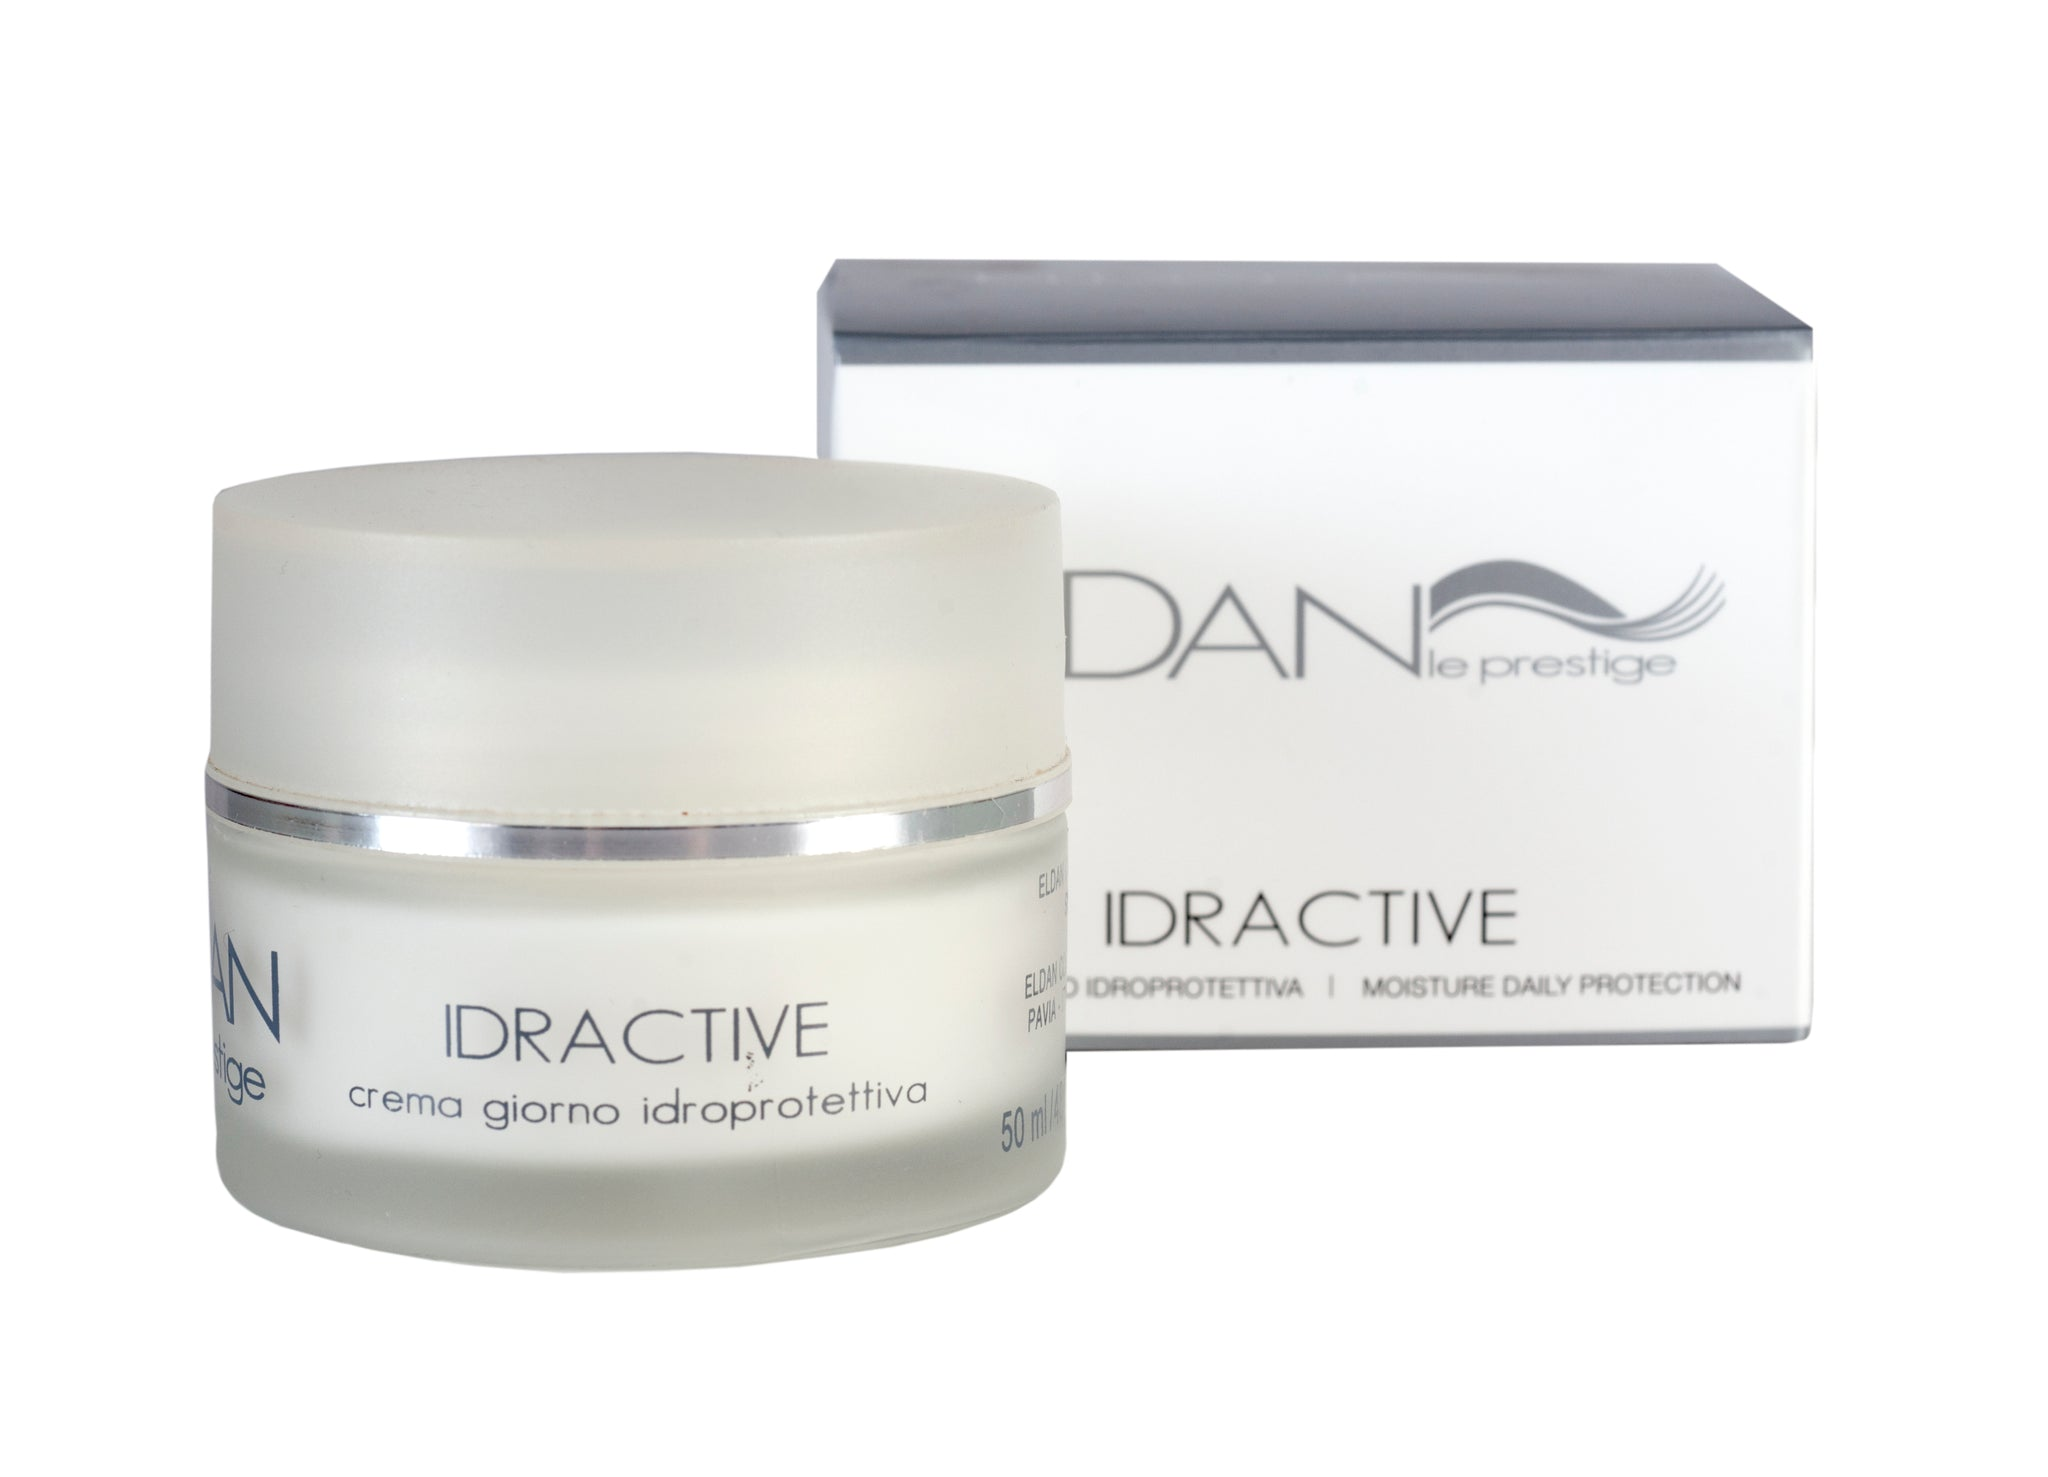 IDRACTIVE moisture daily protection 50ml